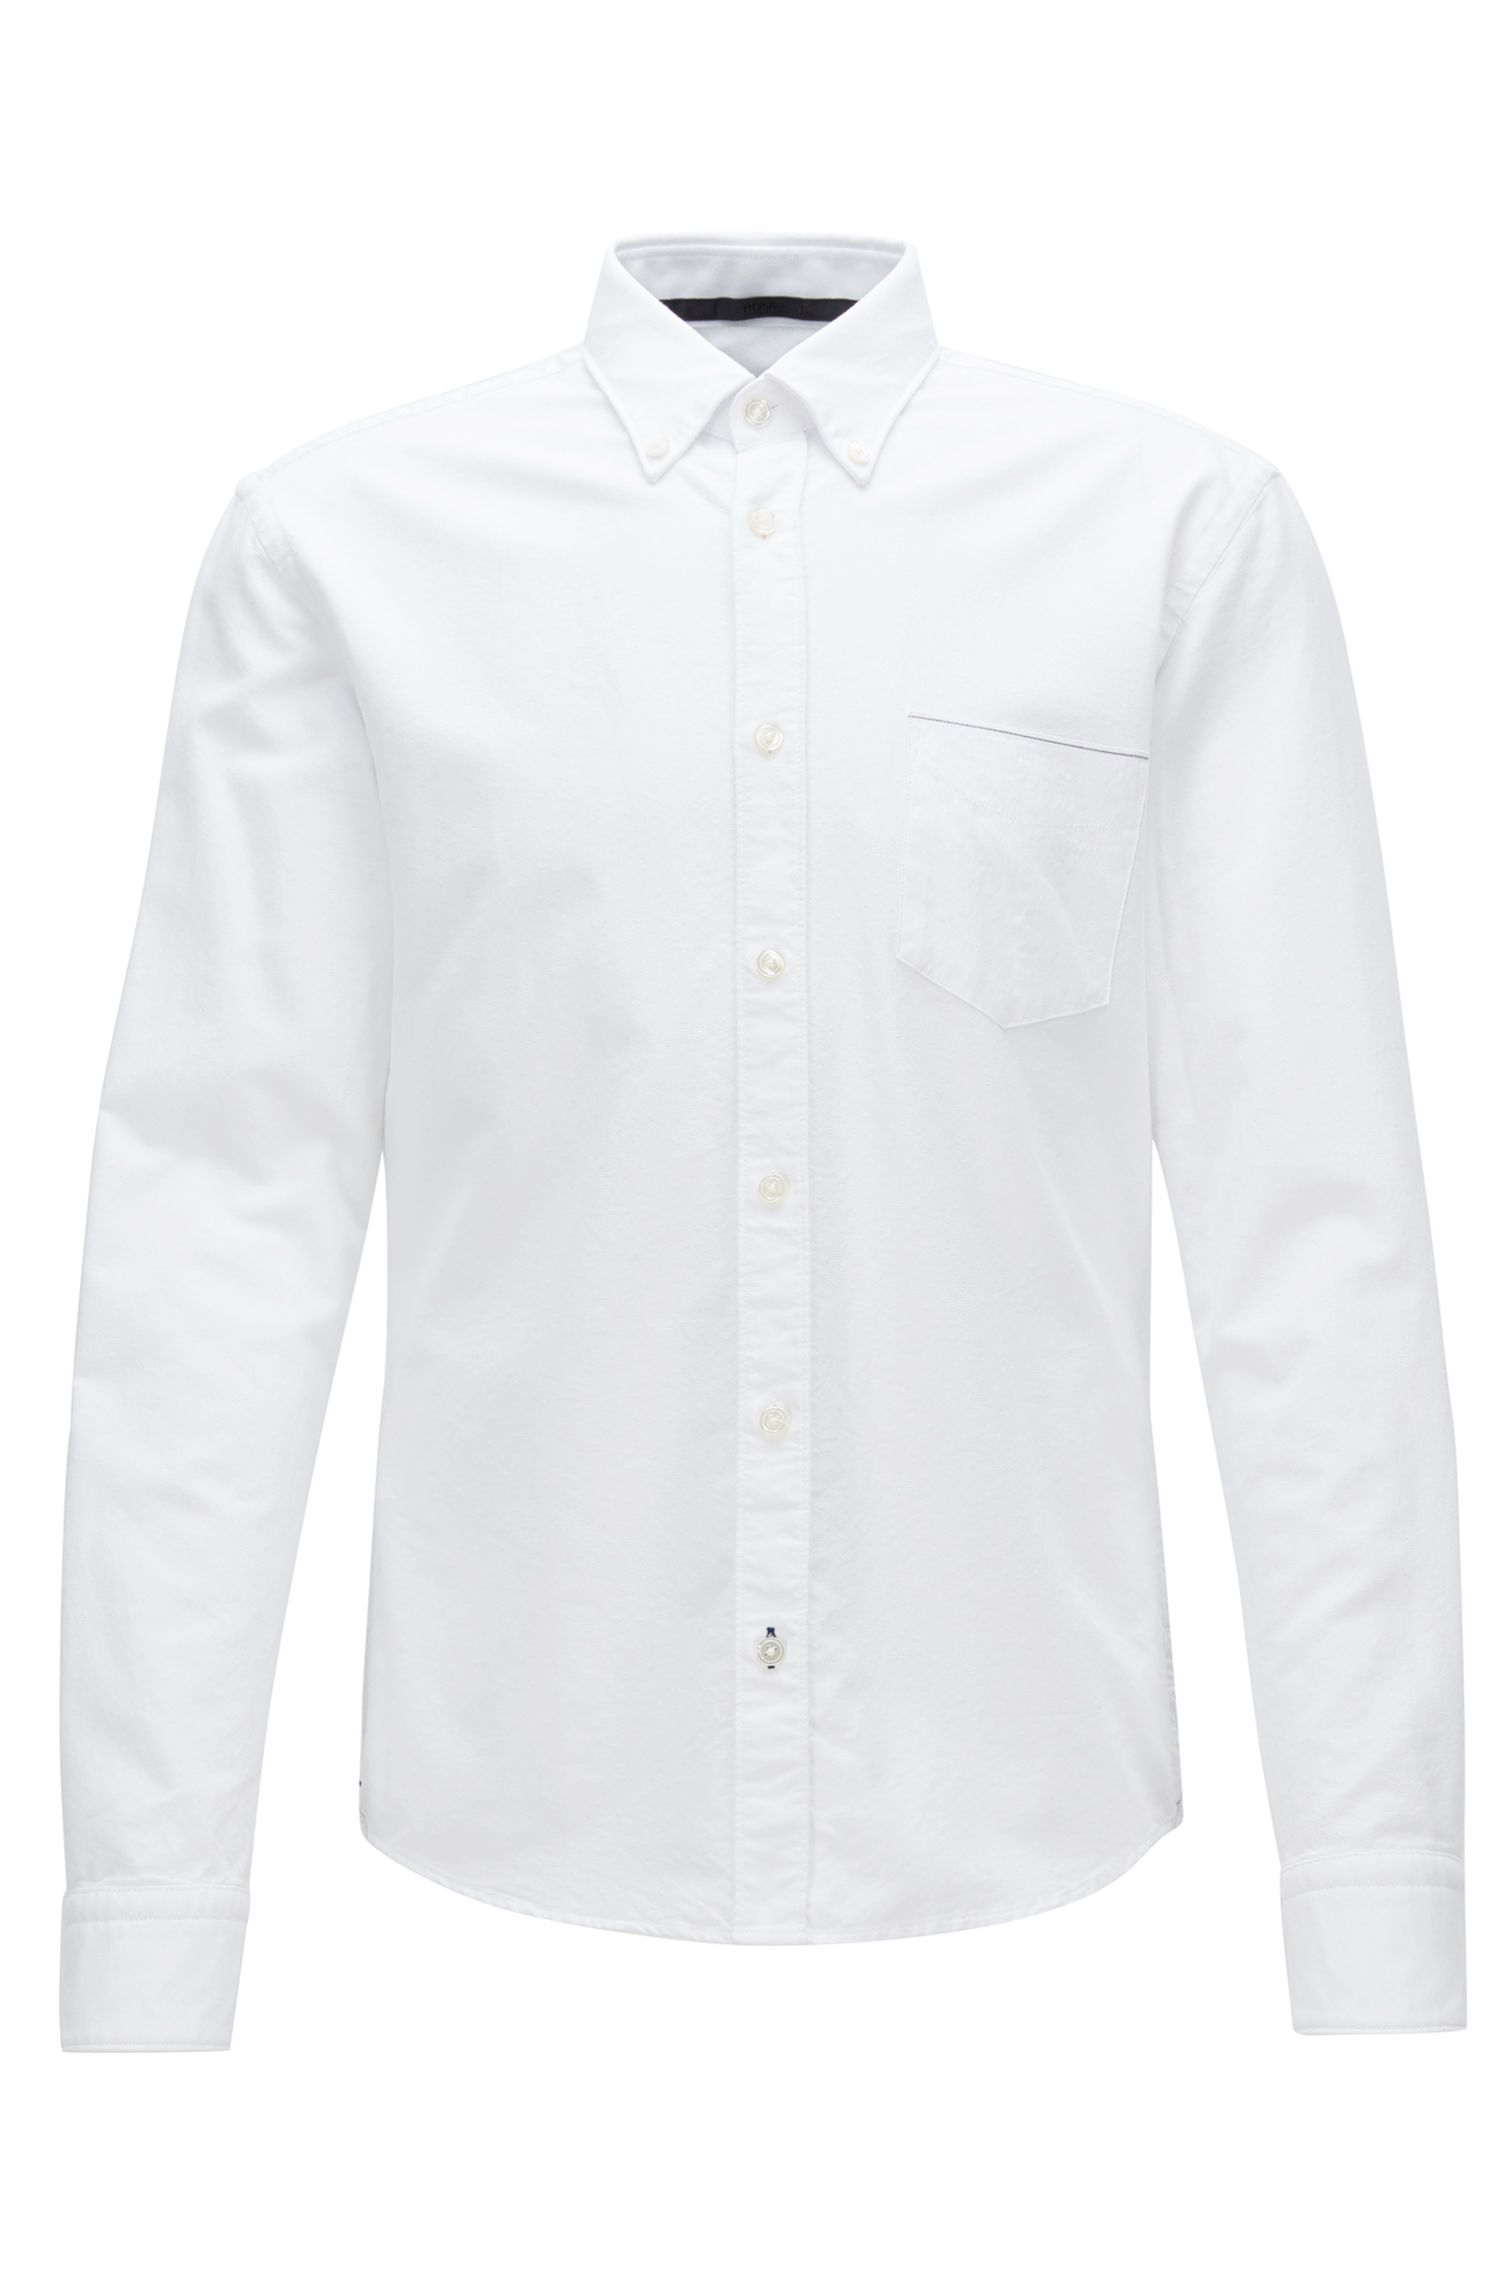 Camicia stile oxford slim fit in cotone con cimose